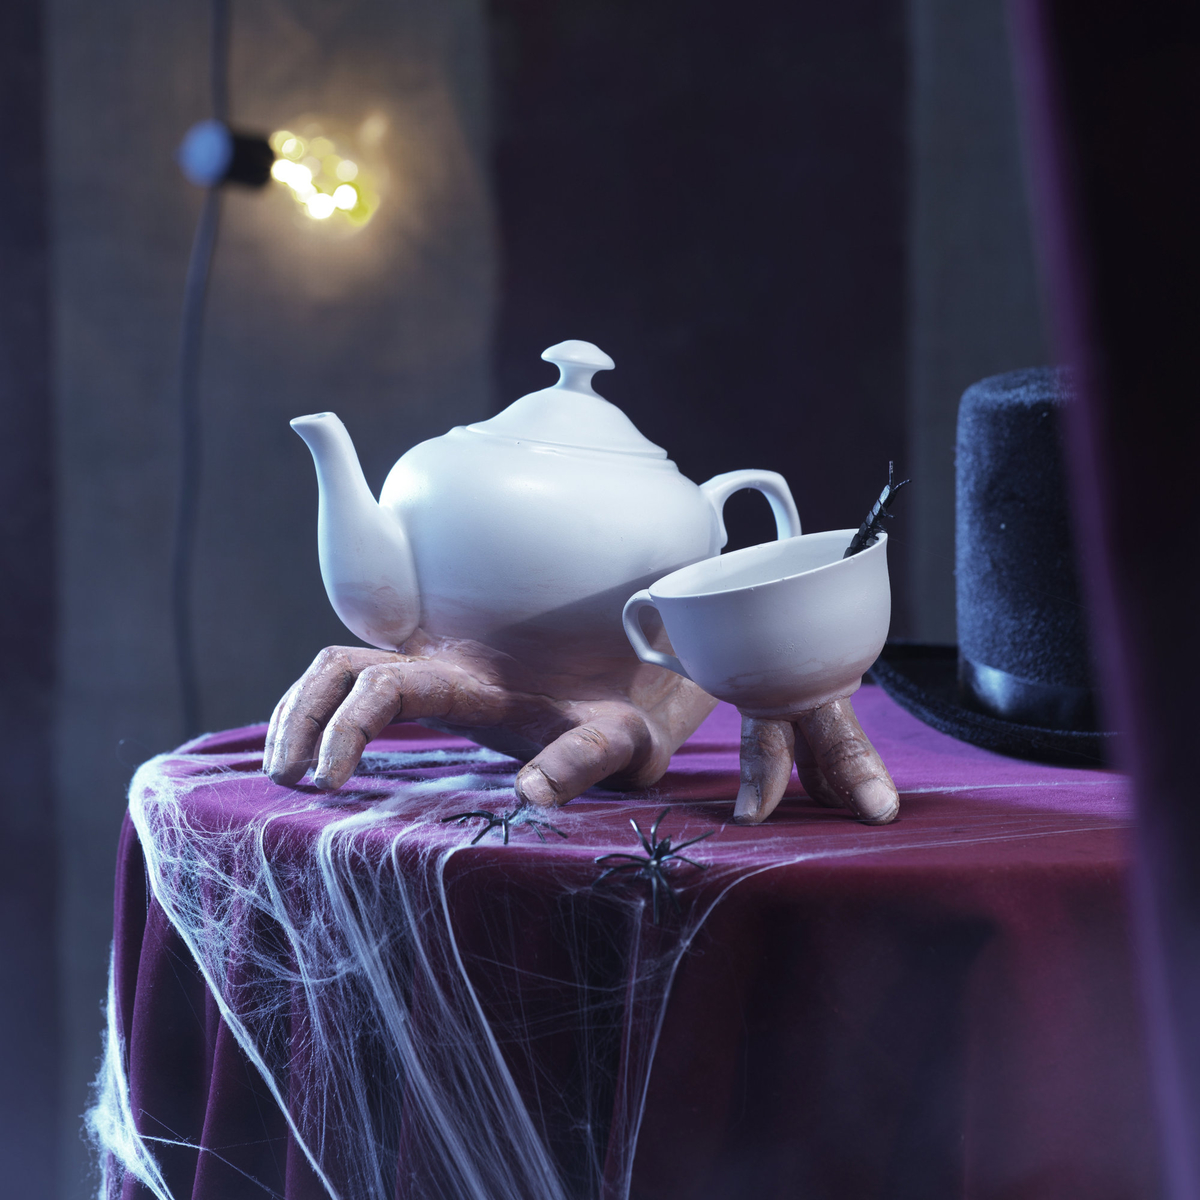 Make a gruesome Halloween tea set